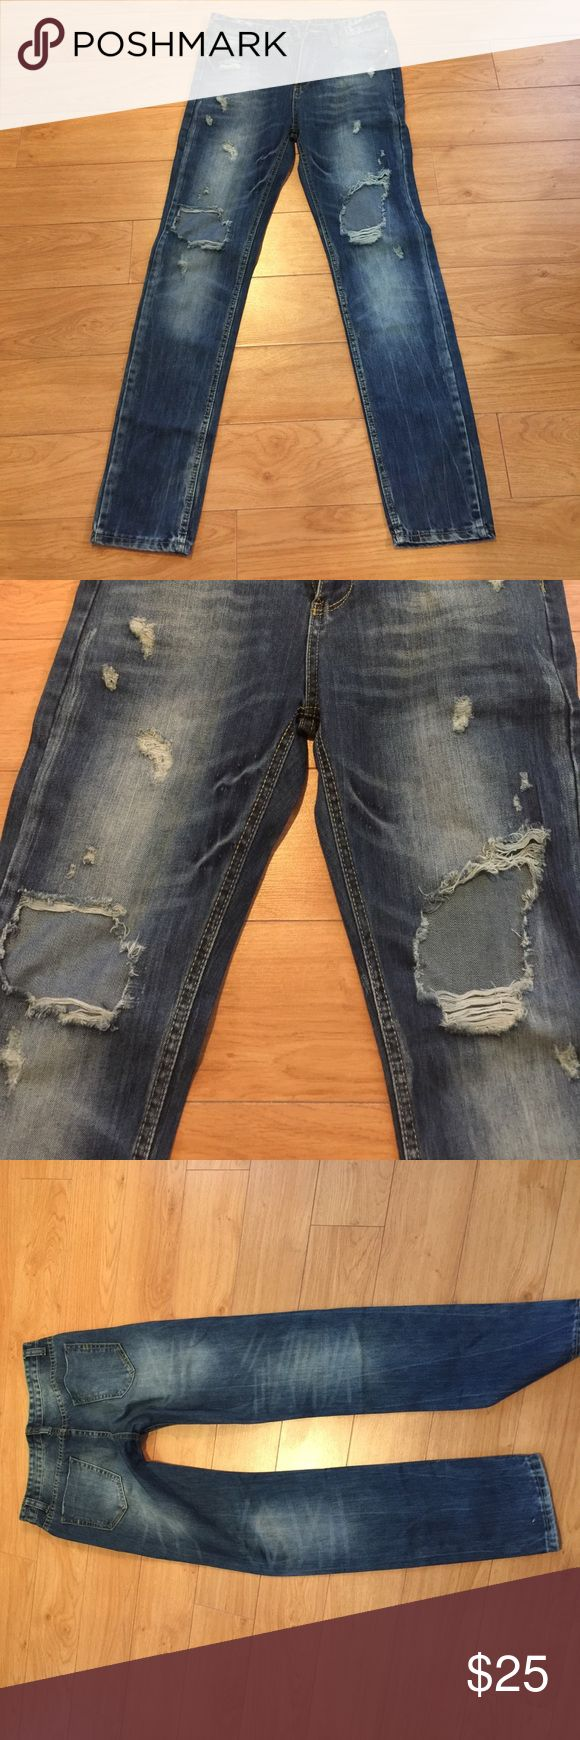 Ripped jeans Unbranded but looks like Zara ripped jeans. About a size 2. unbranded Jeans Boyfriend